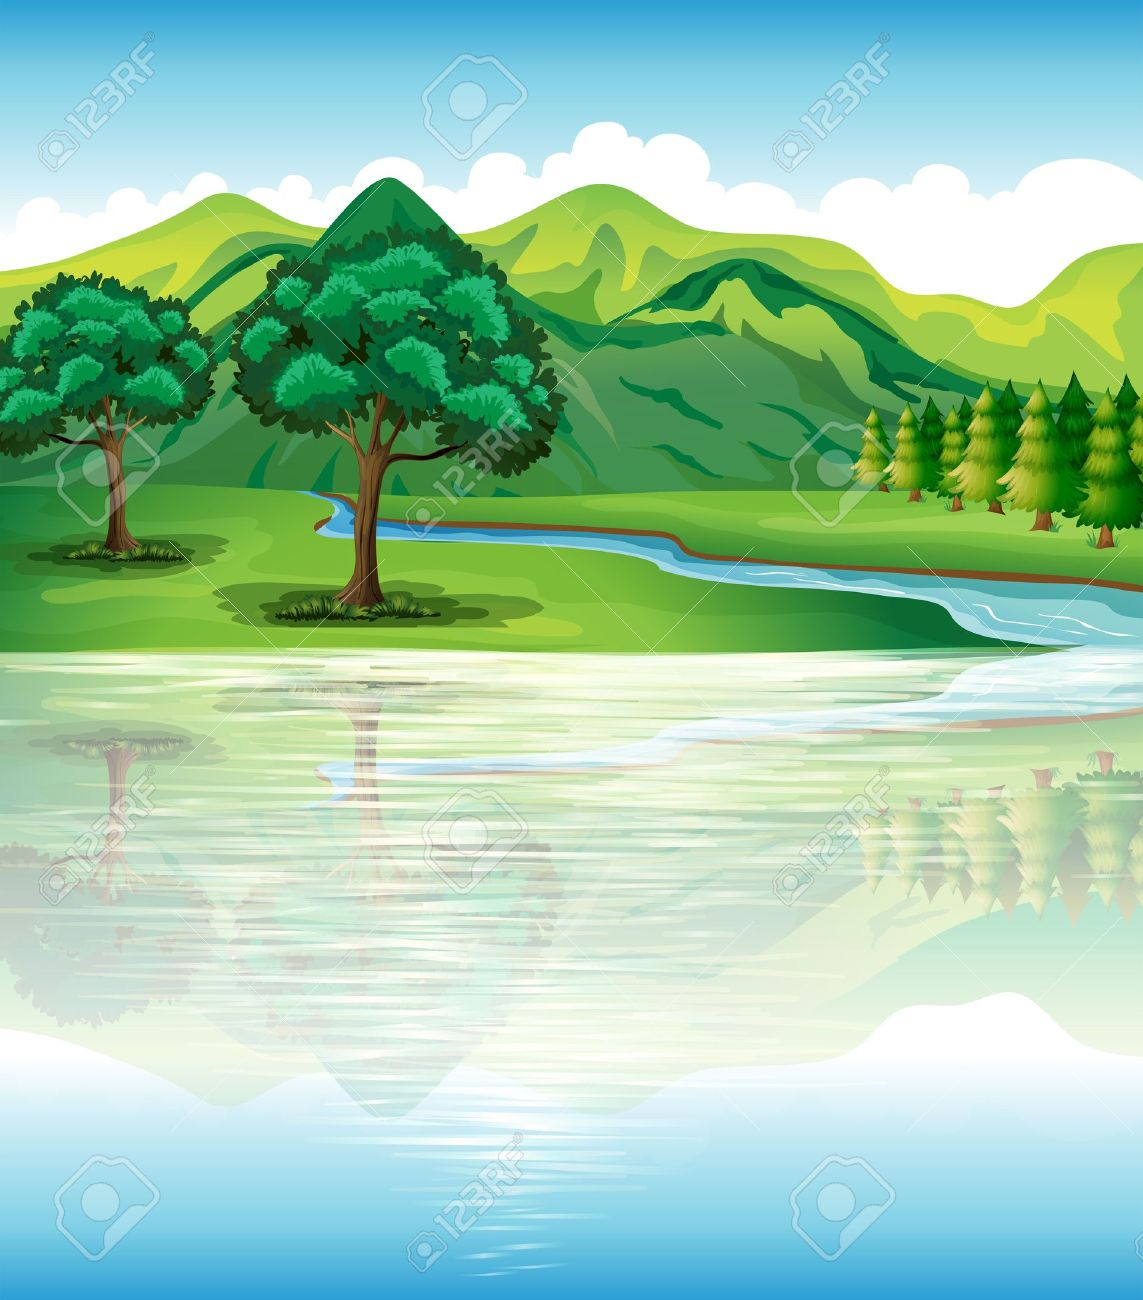 Land and water clipart.